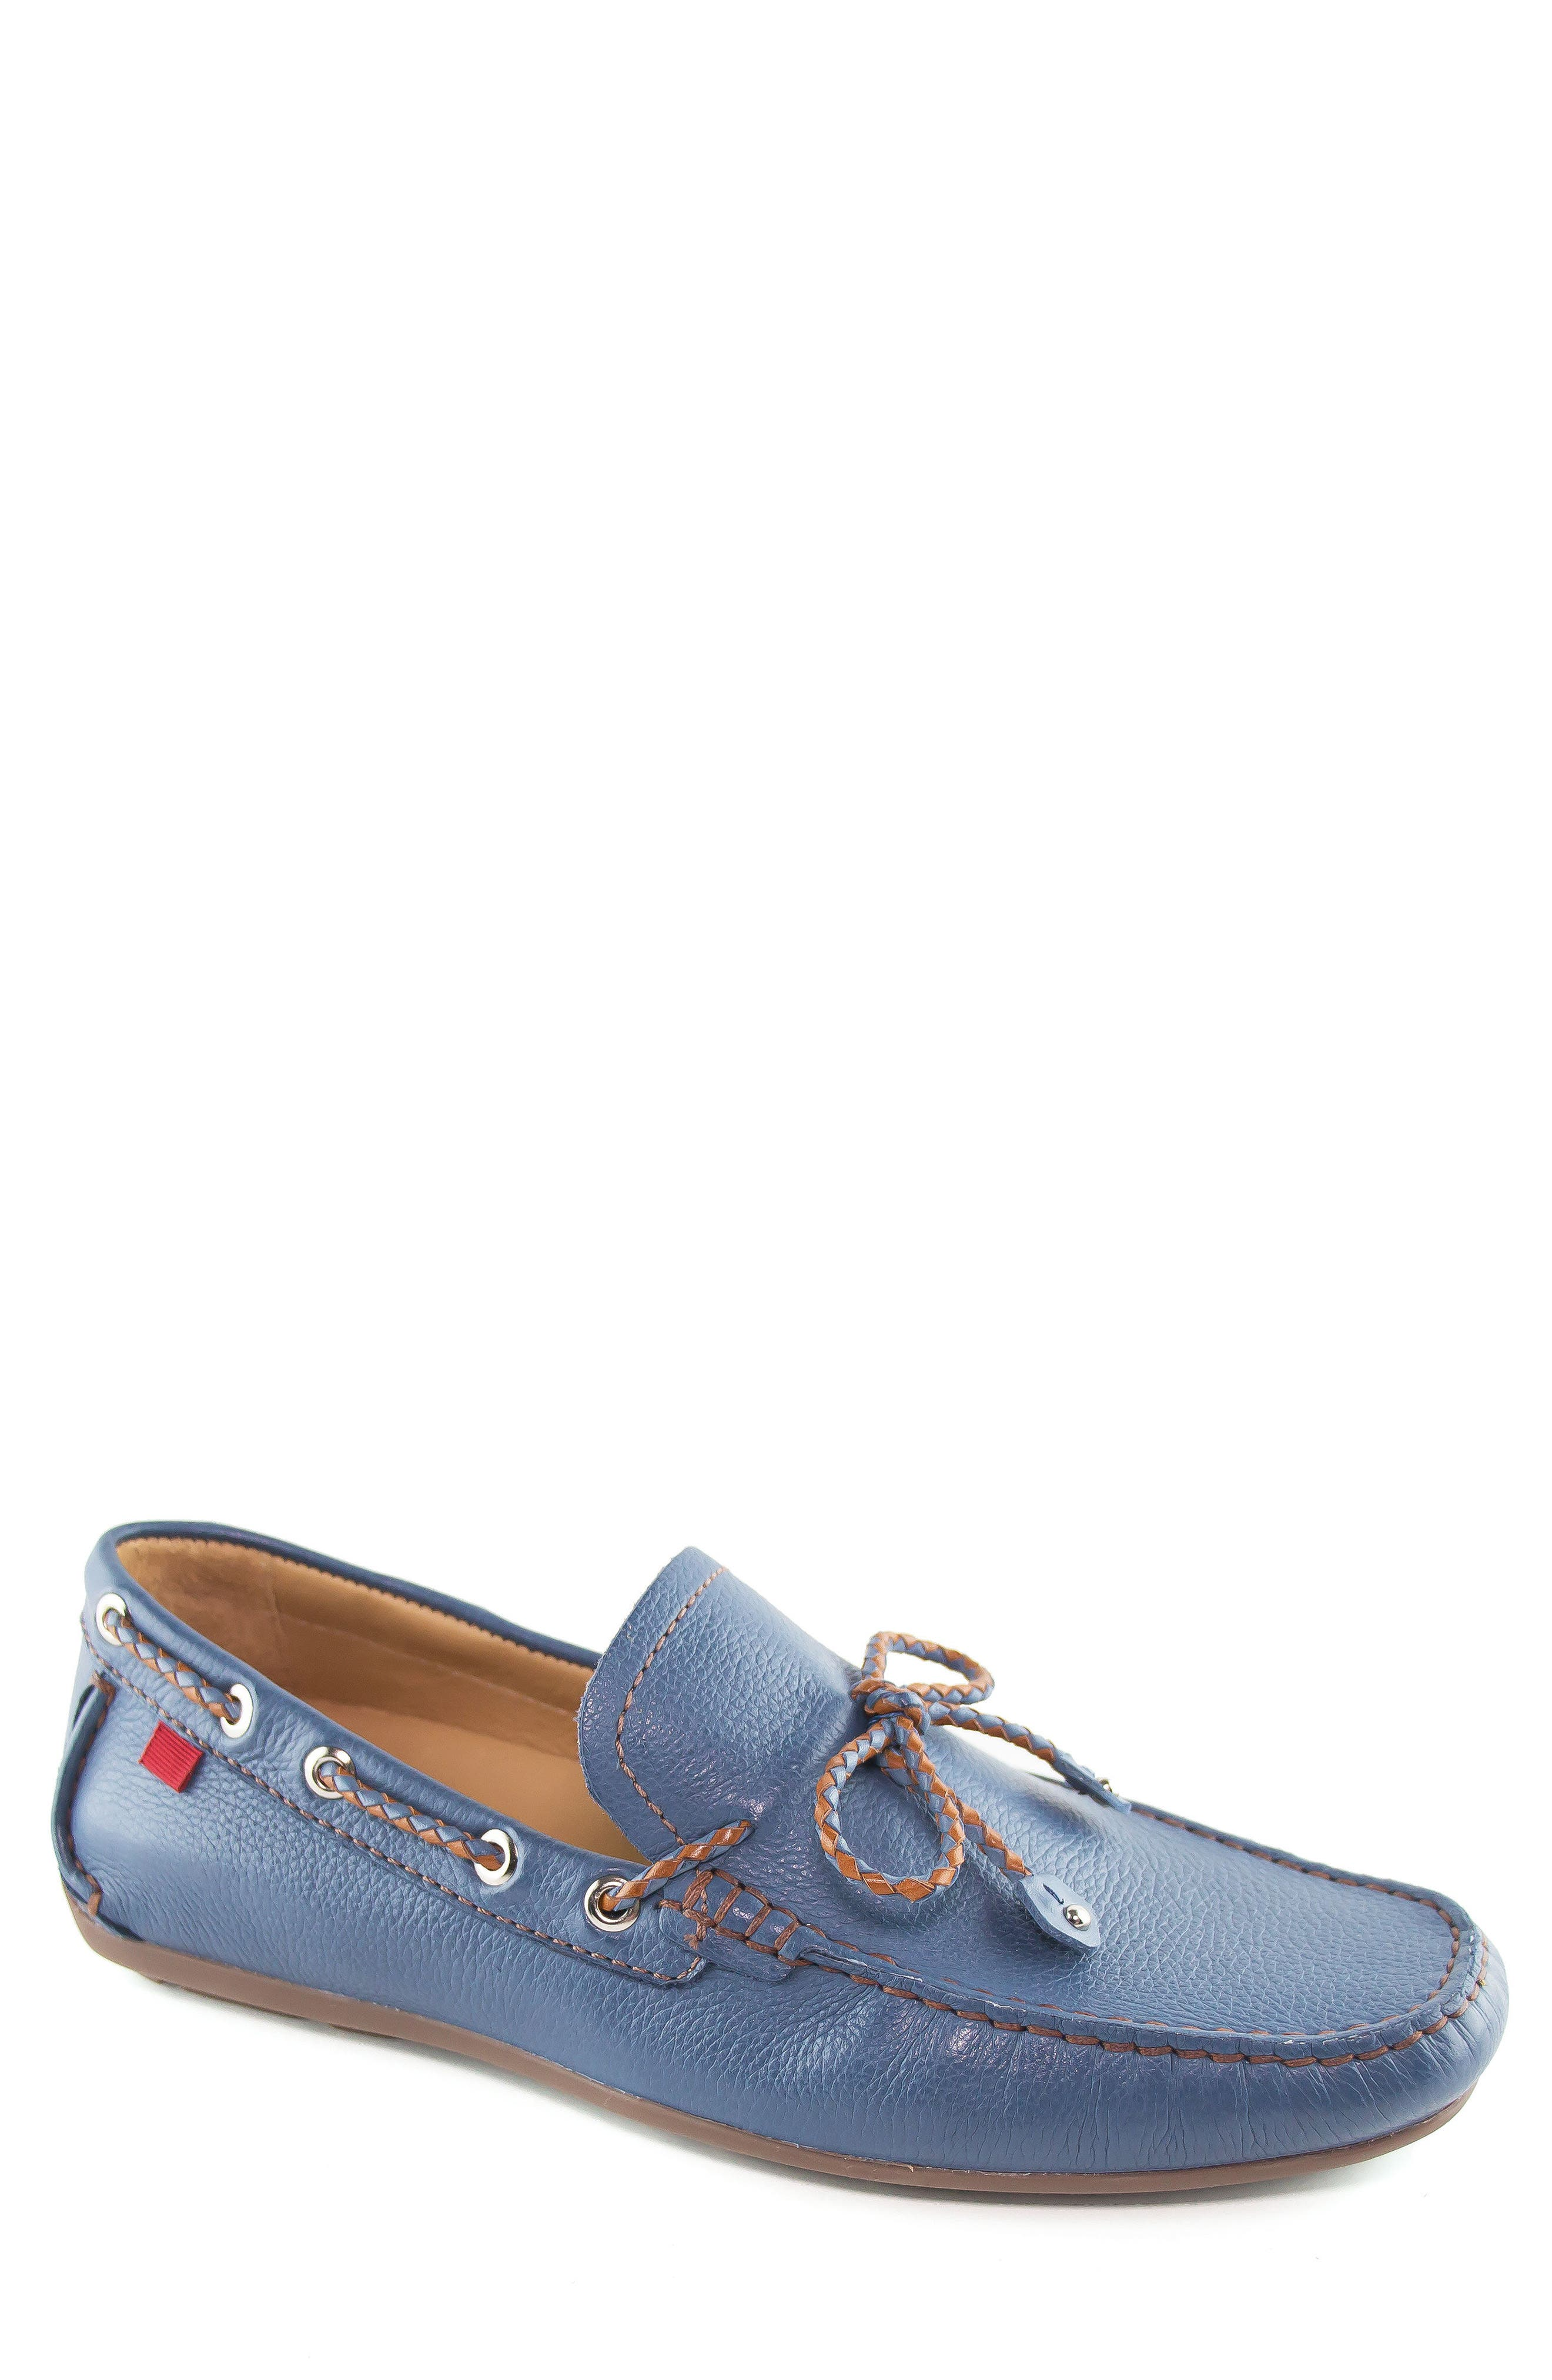 'Cypress' Moccasin,                         Main,                         color, STEEL BLUE